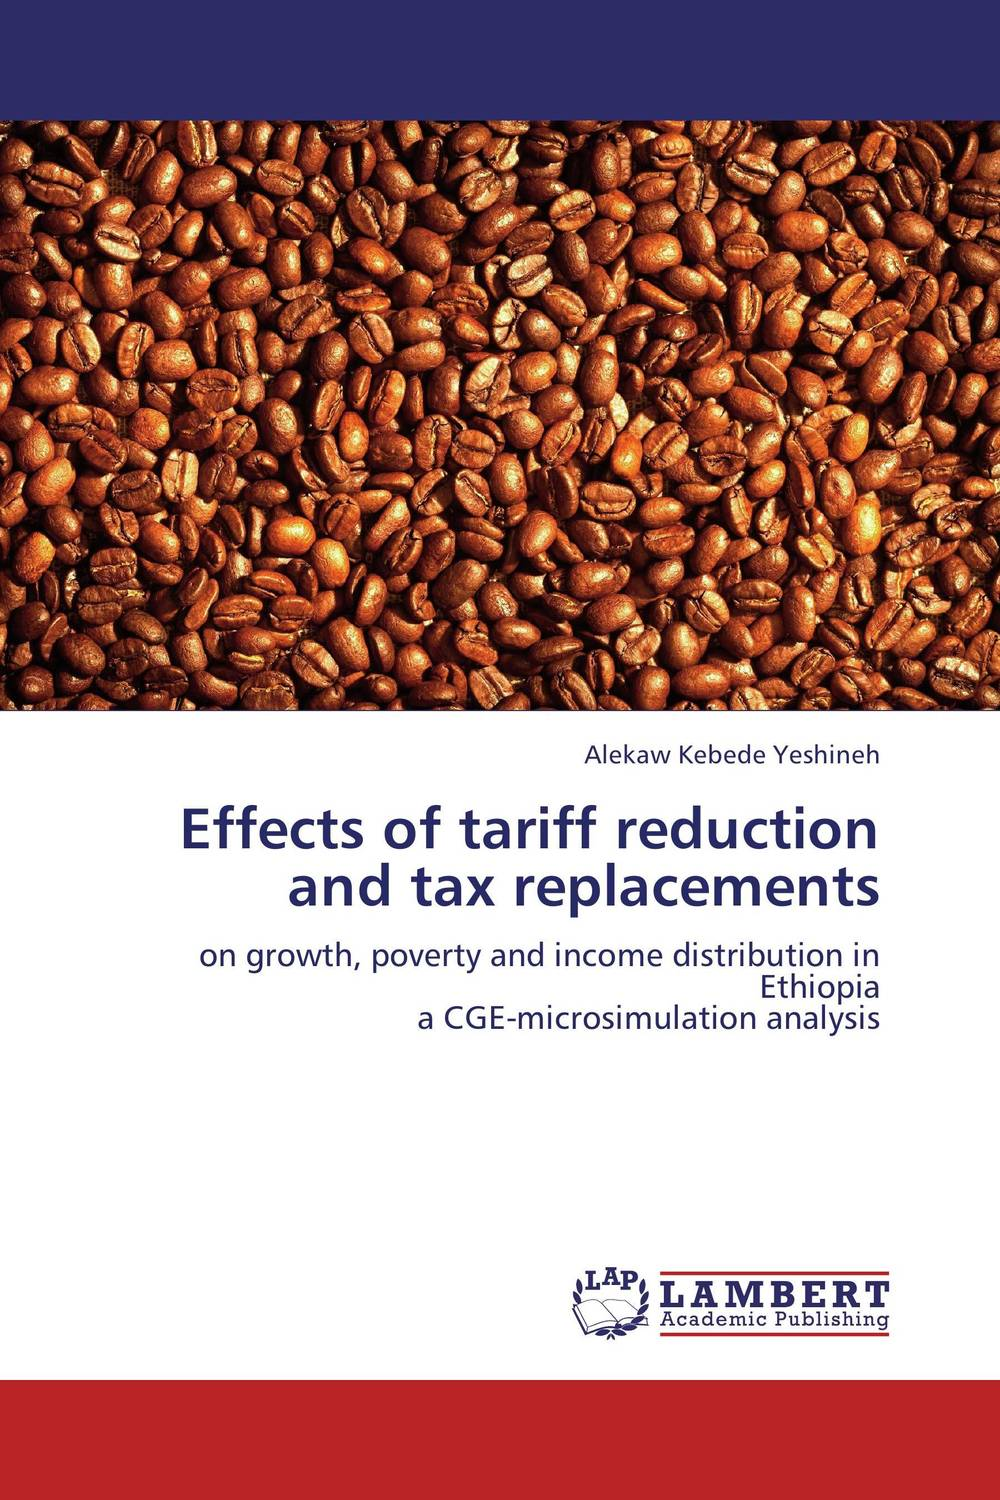 Effects of tariff reduction and tax replacements the nexus between economic growth and poverty reduction